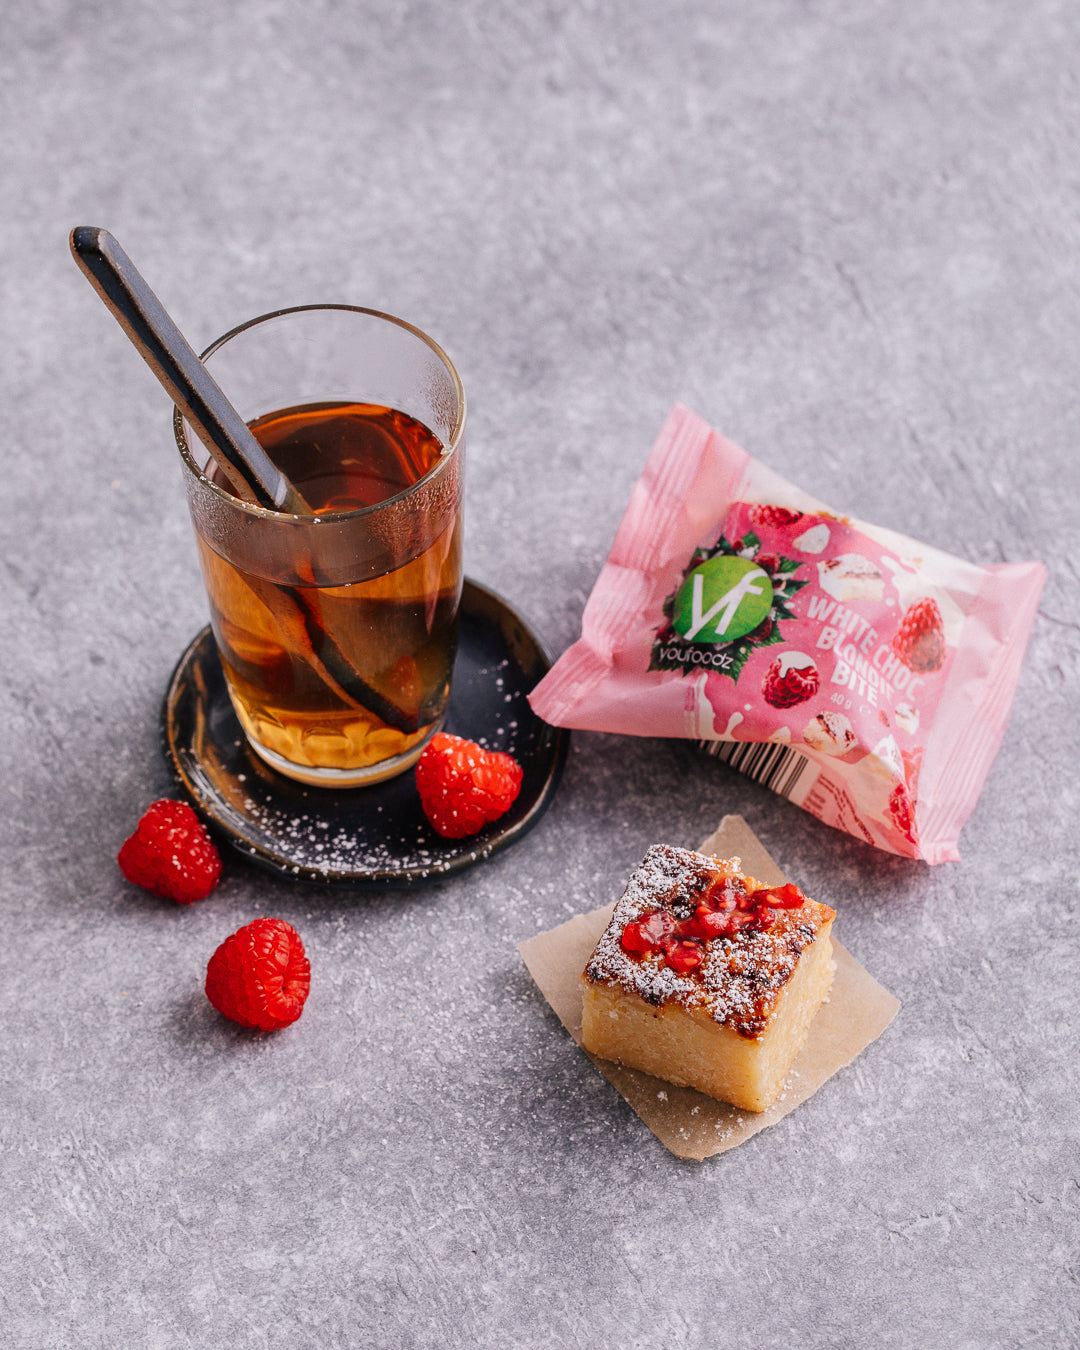 White Choc Blondie Bite with a clear cup of herbal tea